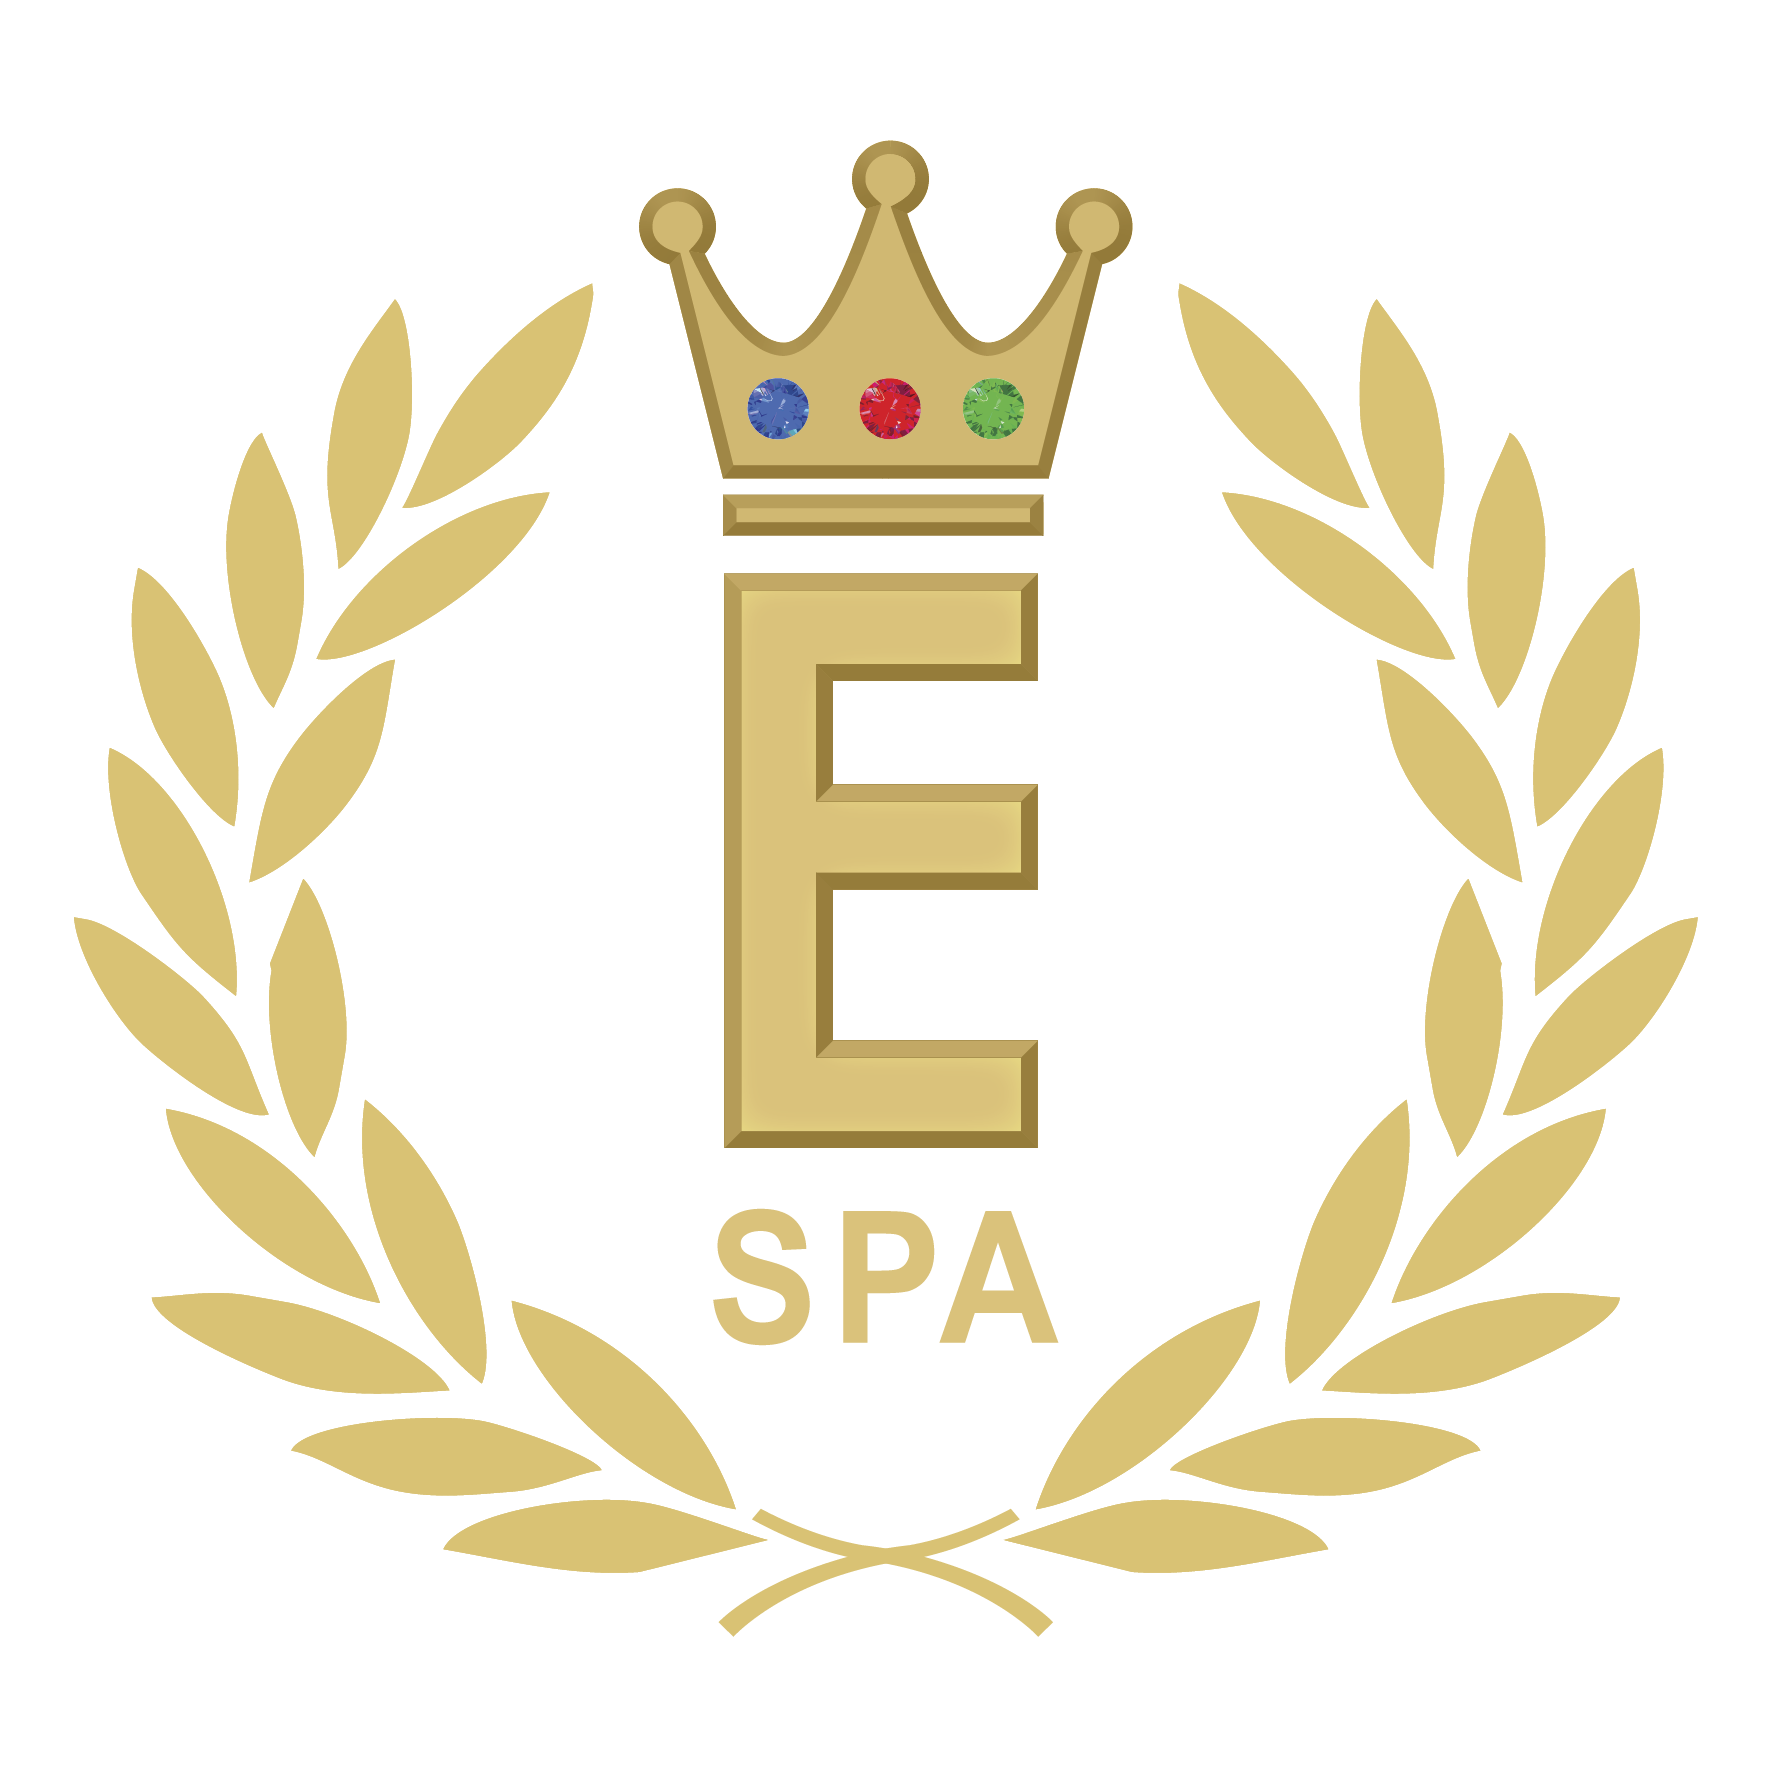 Enchanted SPA Global Academy